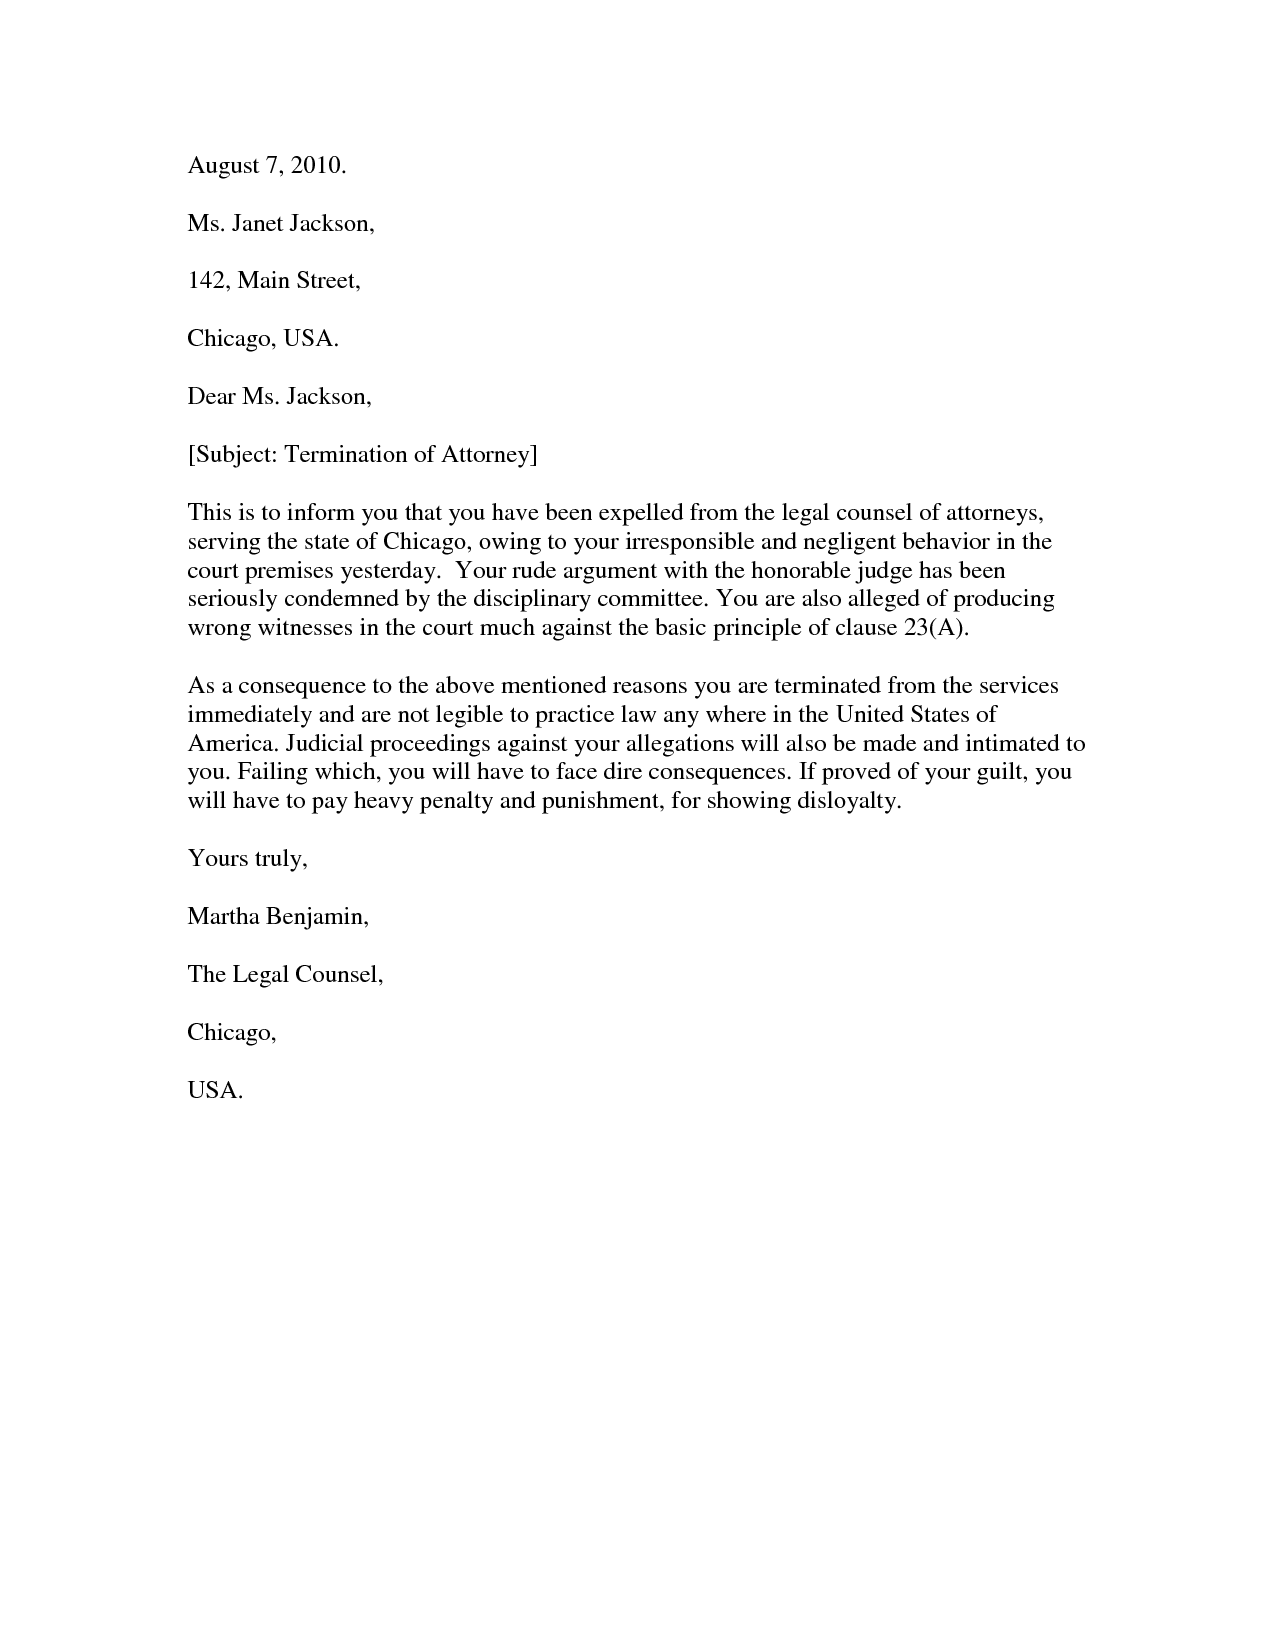 Lawyer termination letter charlotte clergy coalition how to write a letter to fire your lawyer image collections spiritdancerdesigns Image collections